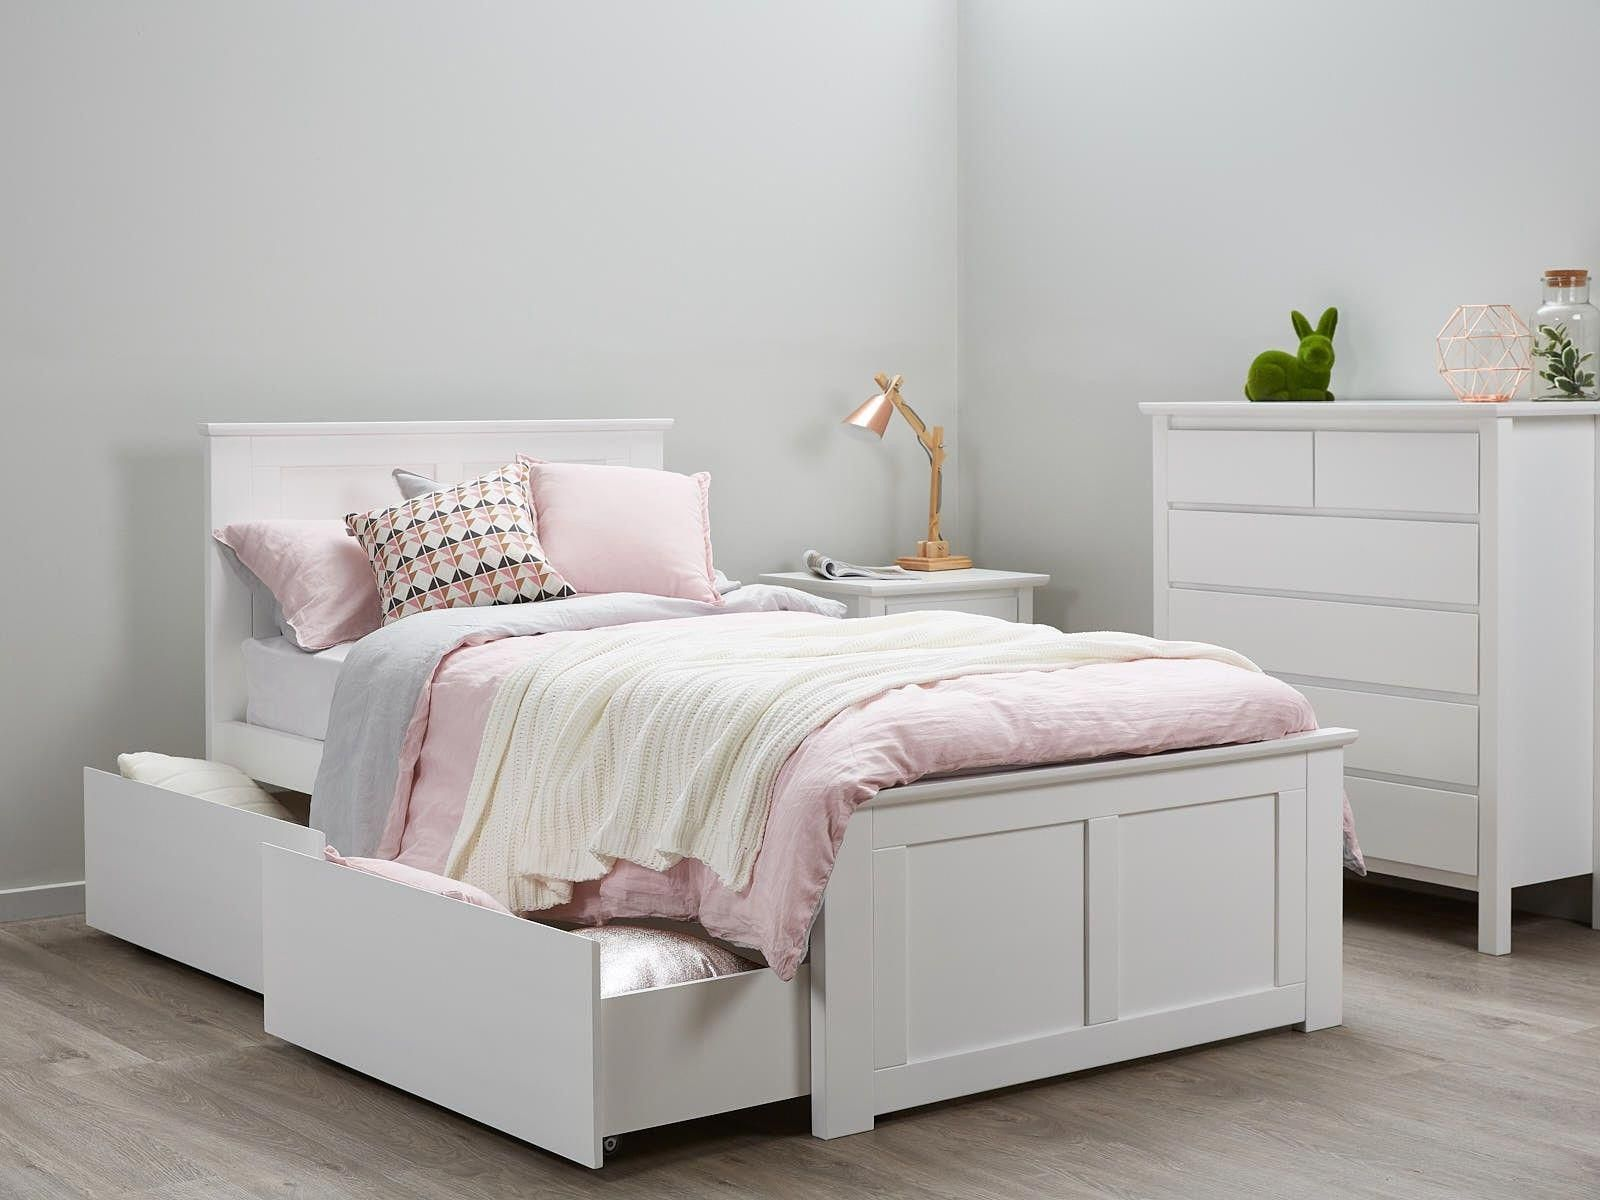 White Kids King Single Beds With Storage Modern Single Beds With Storage Single Bedroom Luxury Bedroom Furniture